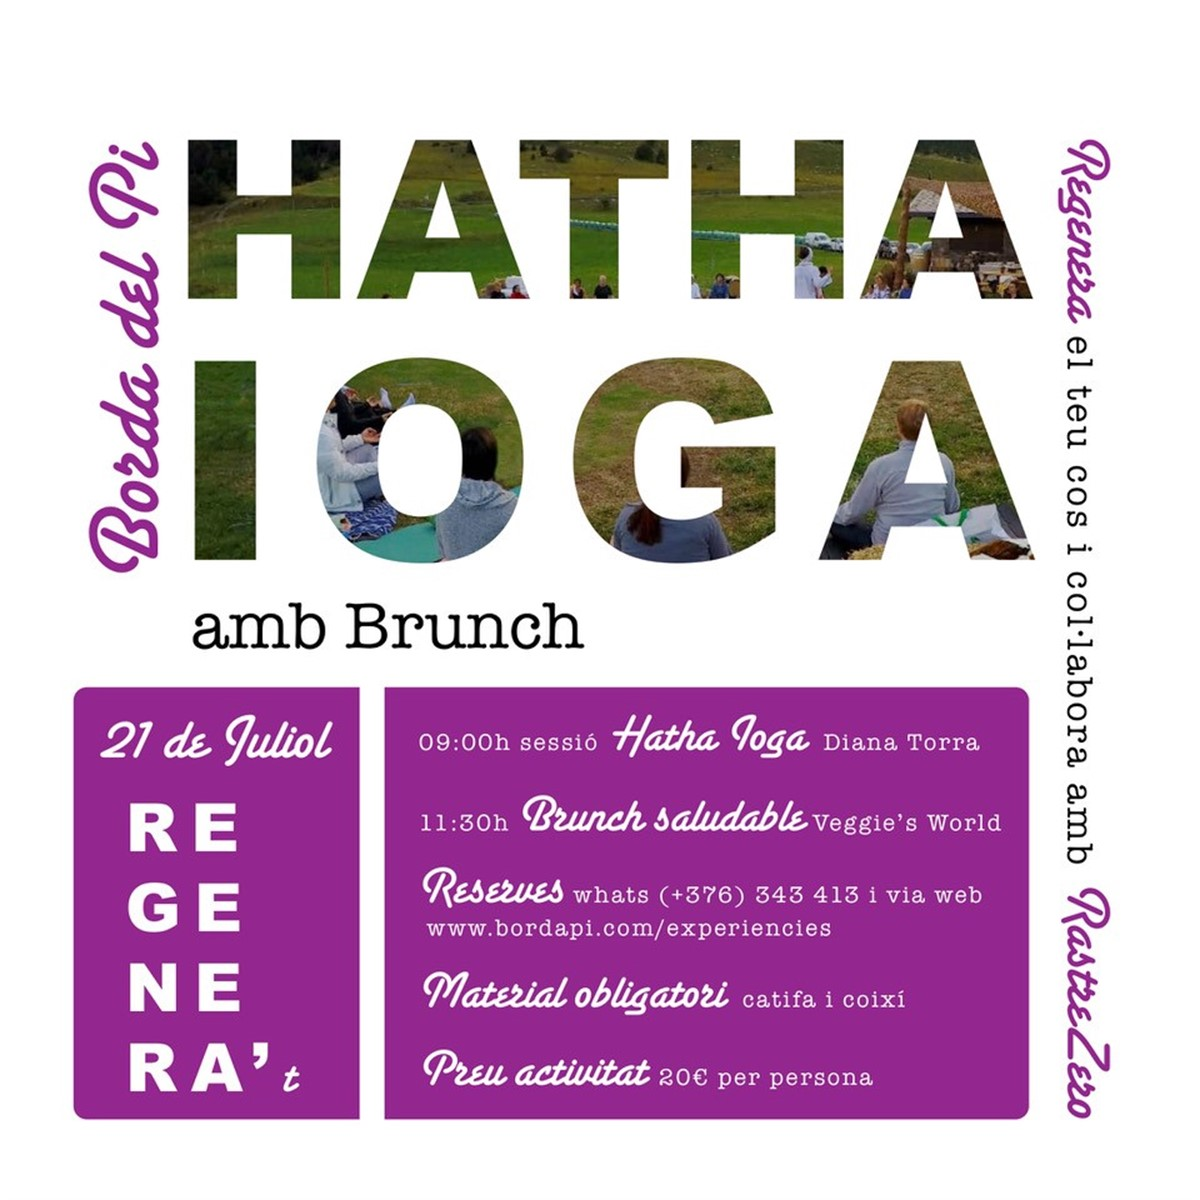 Hatha Yoga + Brunch